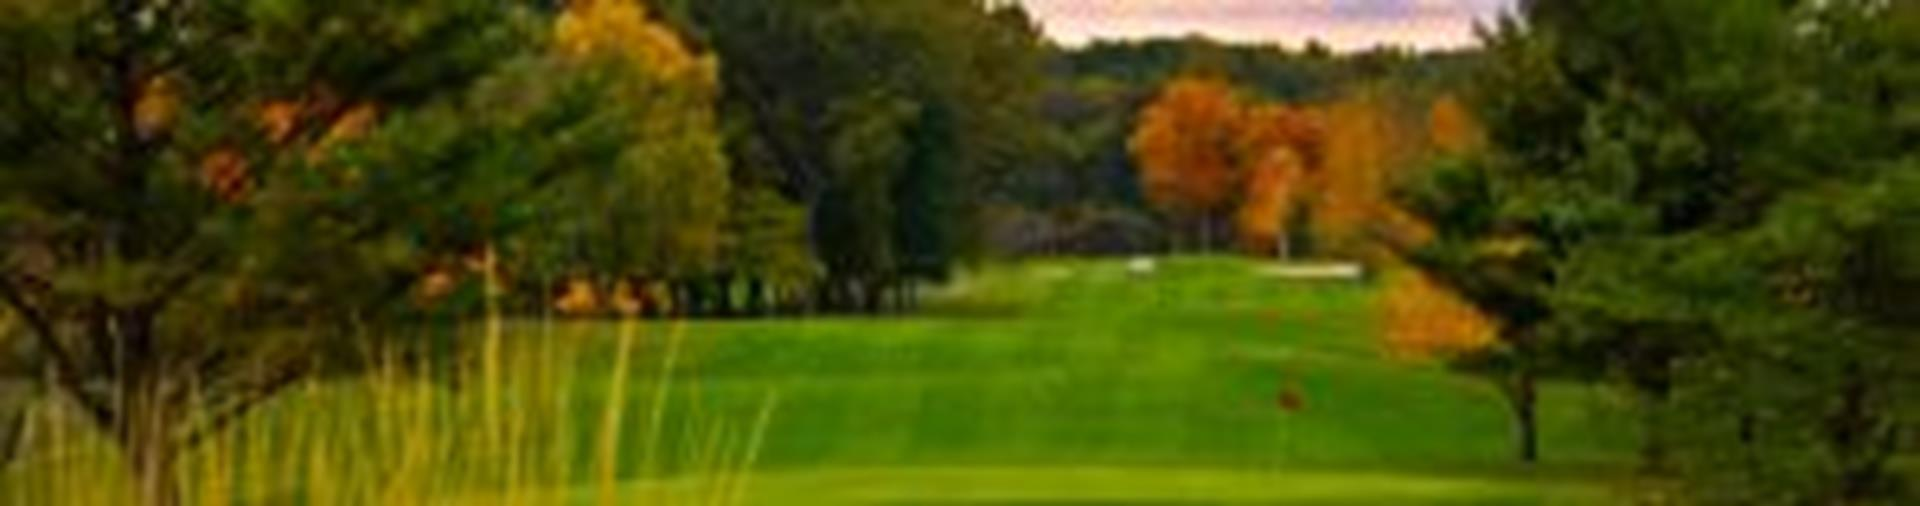 muskegon country club